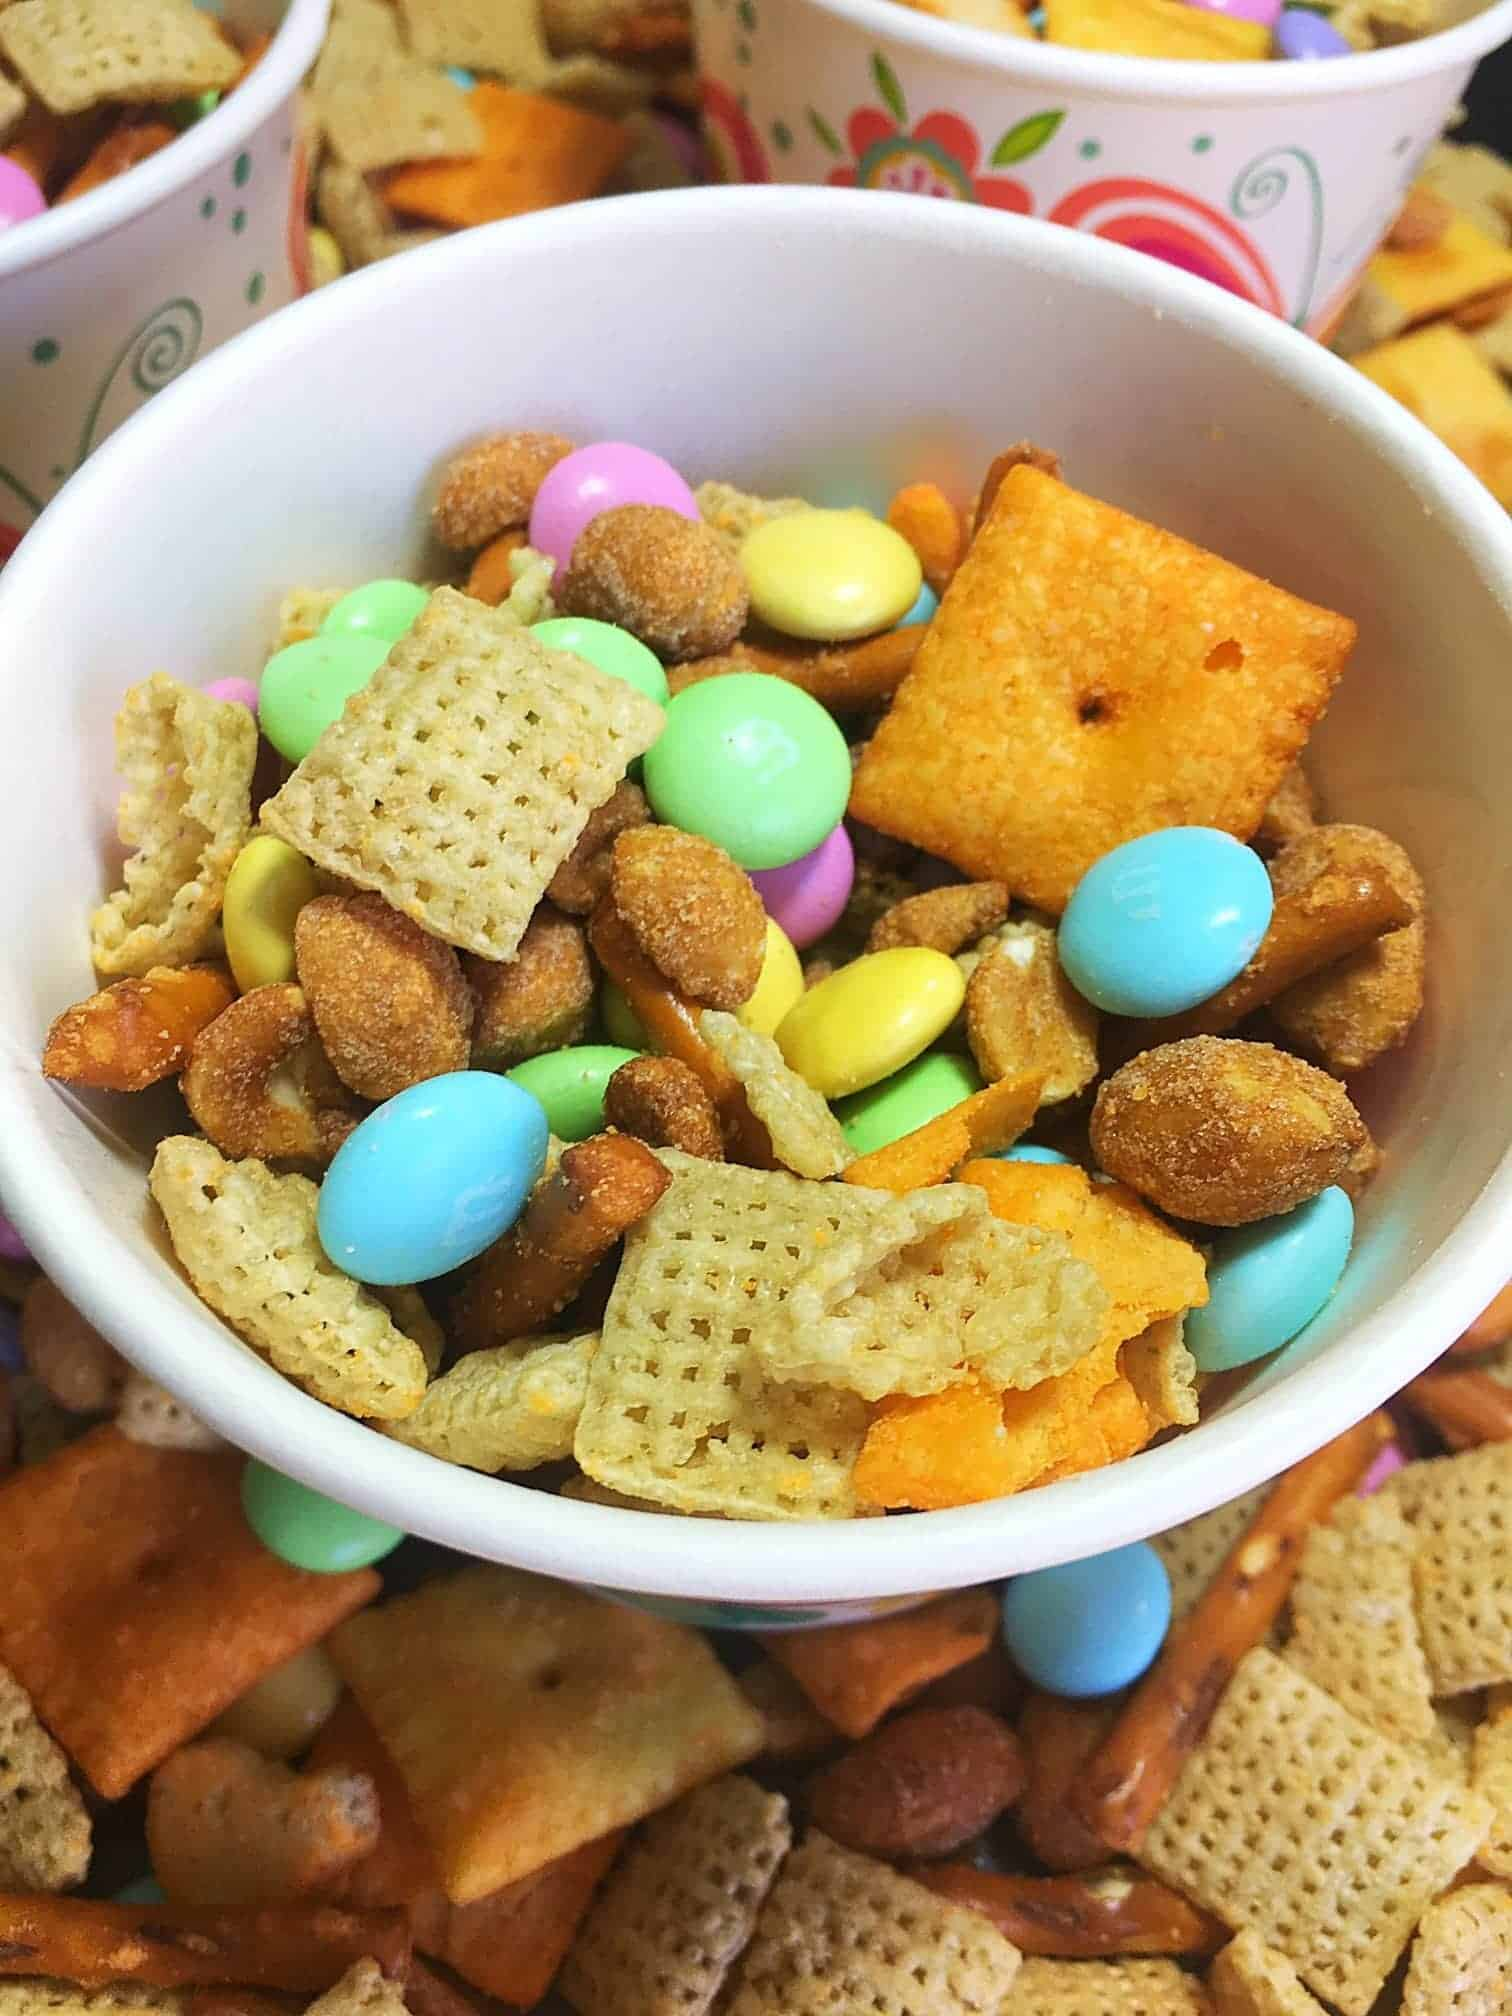 Sweet and Salty Spring Chex Mix- Whether you're craving something sweet or salty, this easy to make Sweet & Salty Spring Chex Mix features both flavors that'll leave you completely satisfied. Plus it only takes 5 minutes to whip together and is perfect for serving to family and friends!